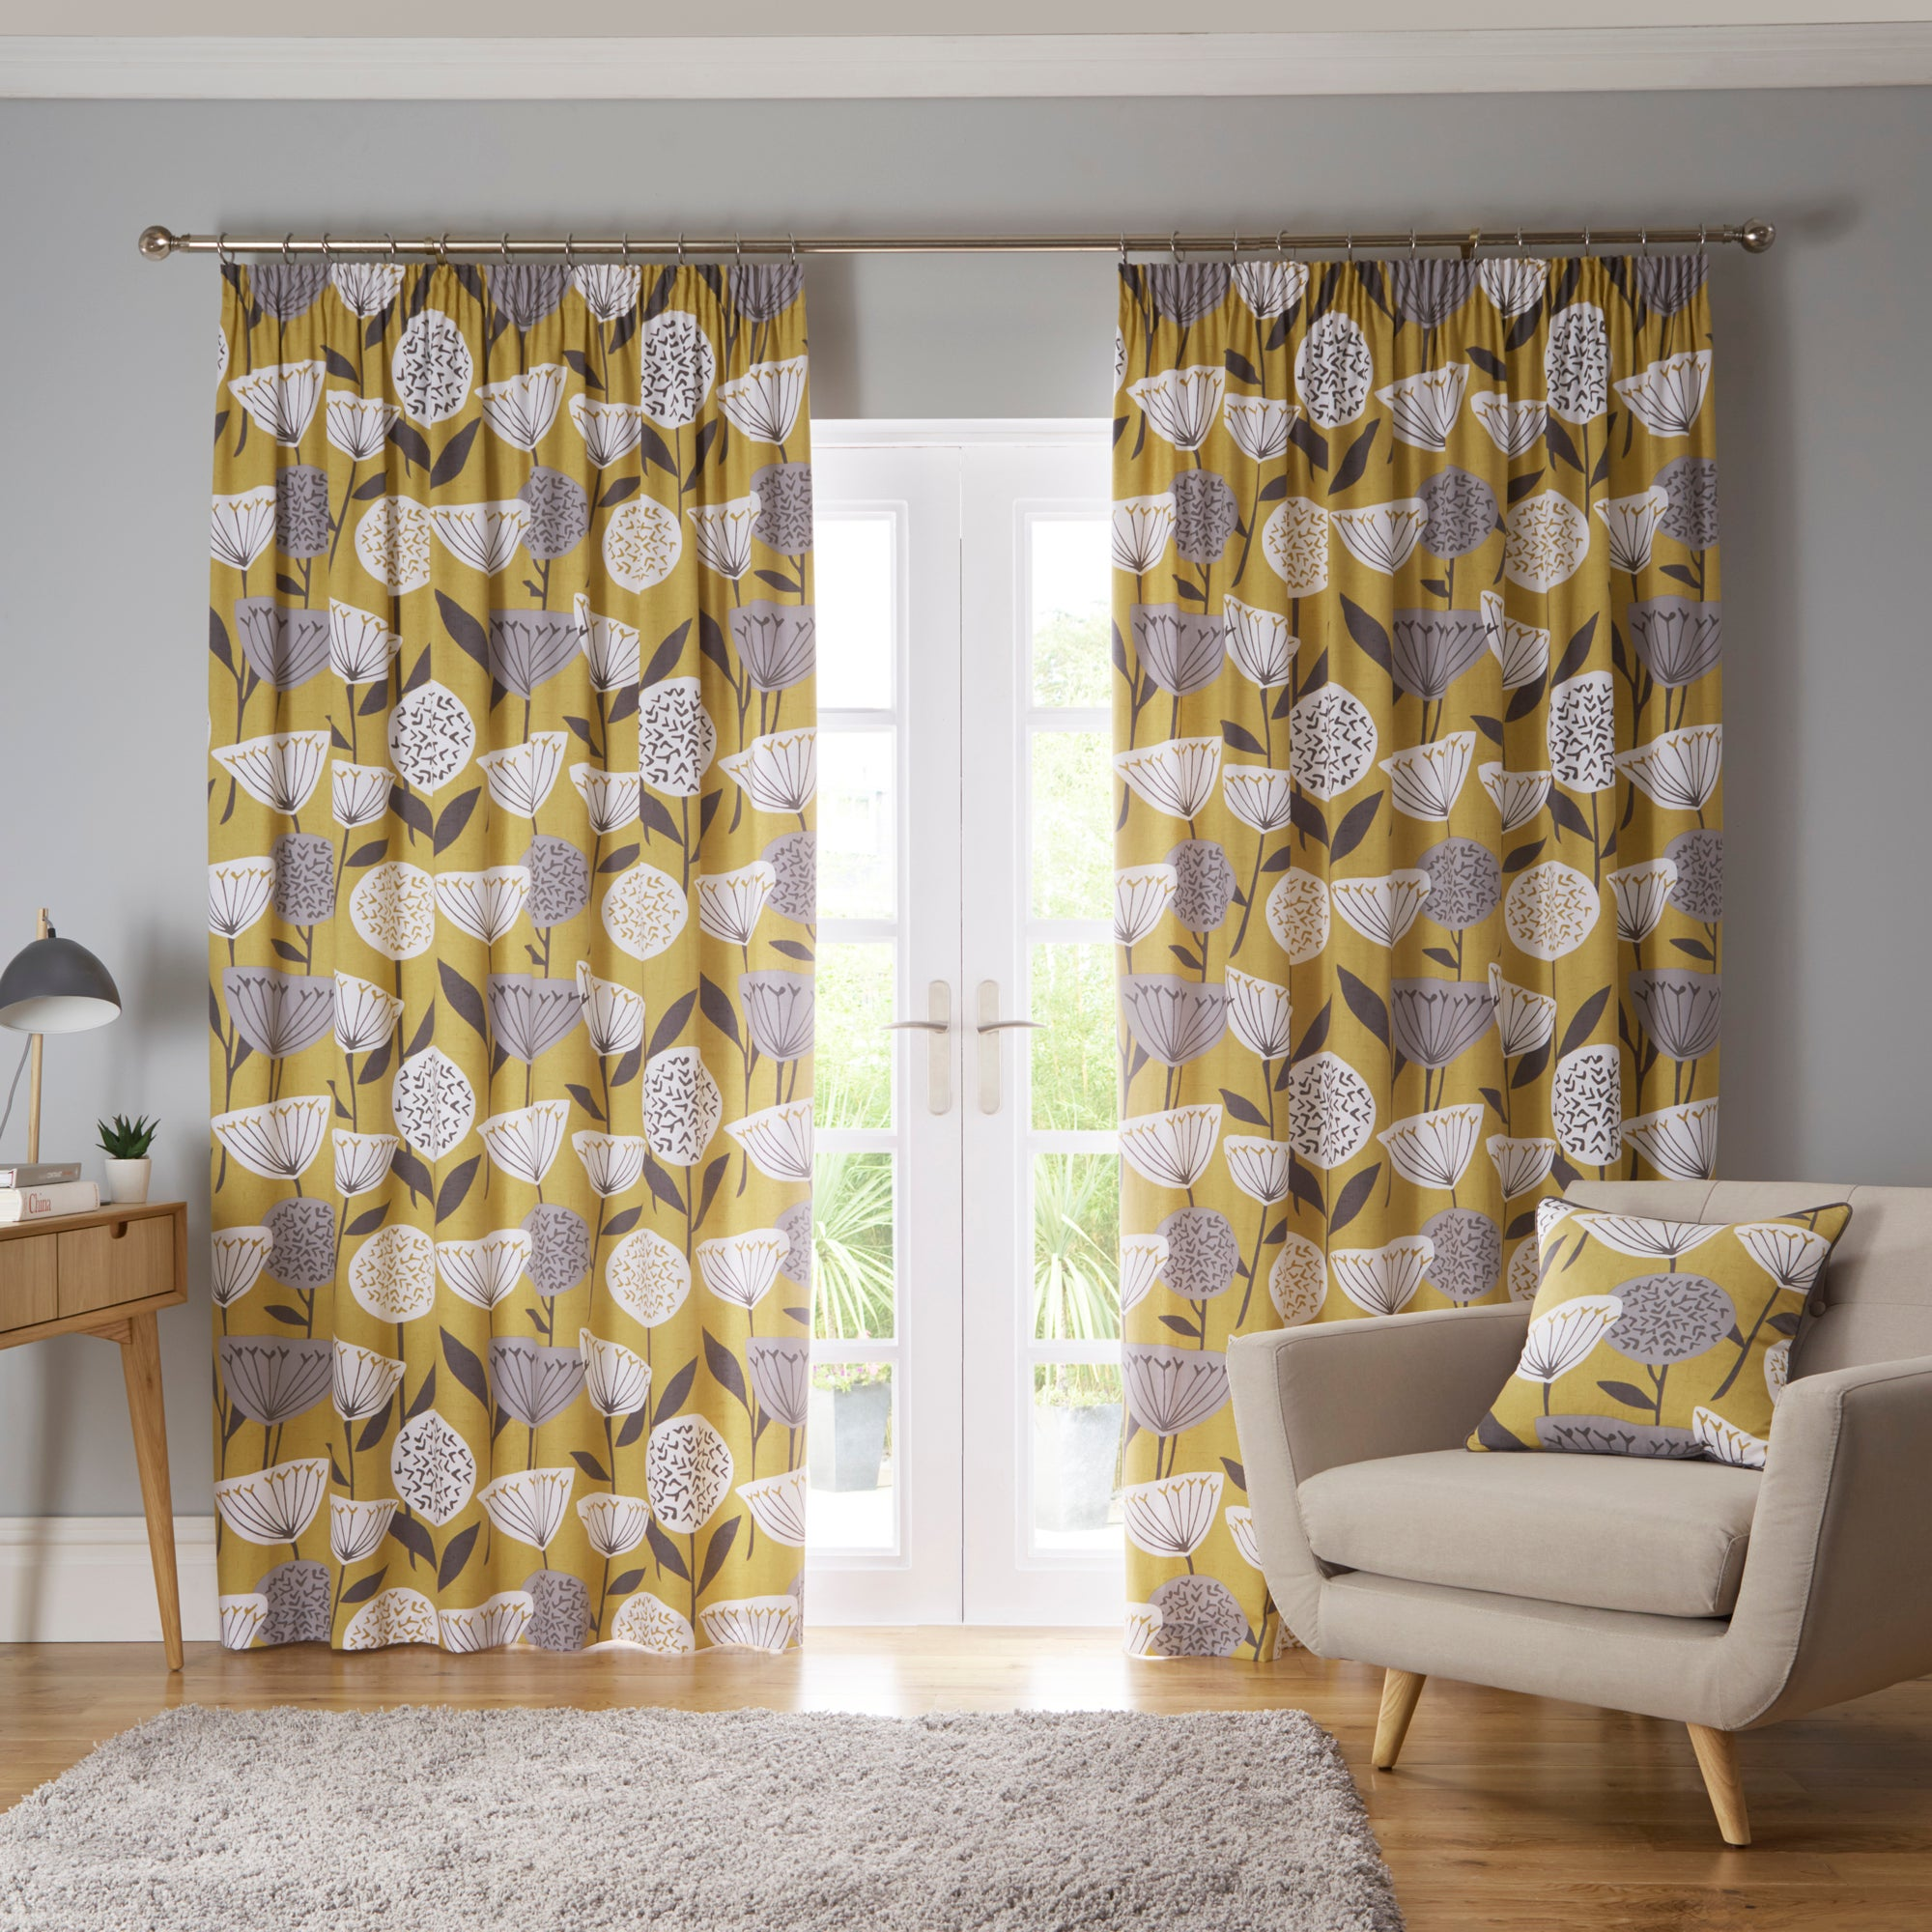 Photo of Elements emmott ochre pencil pleat curtains yellow- grey and white